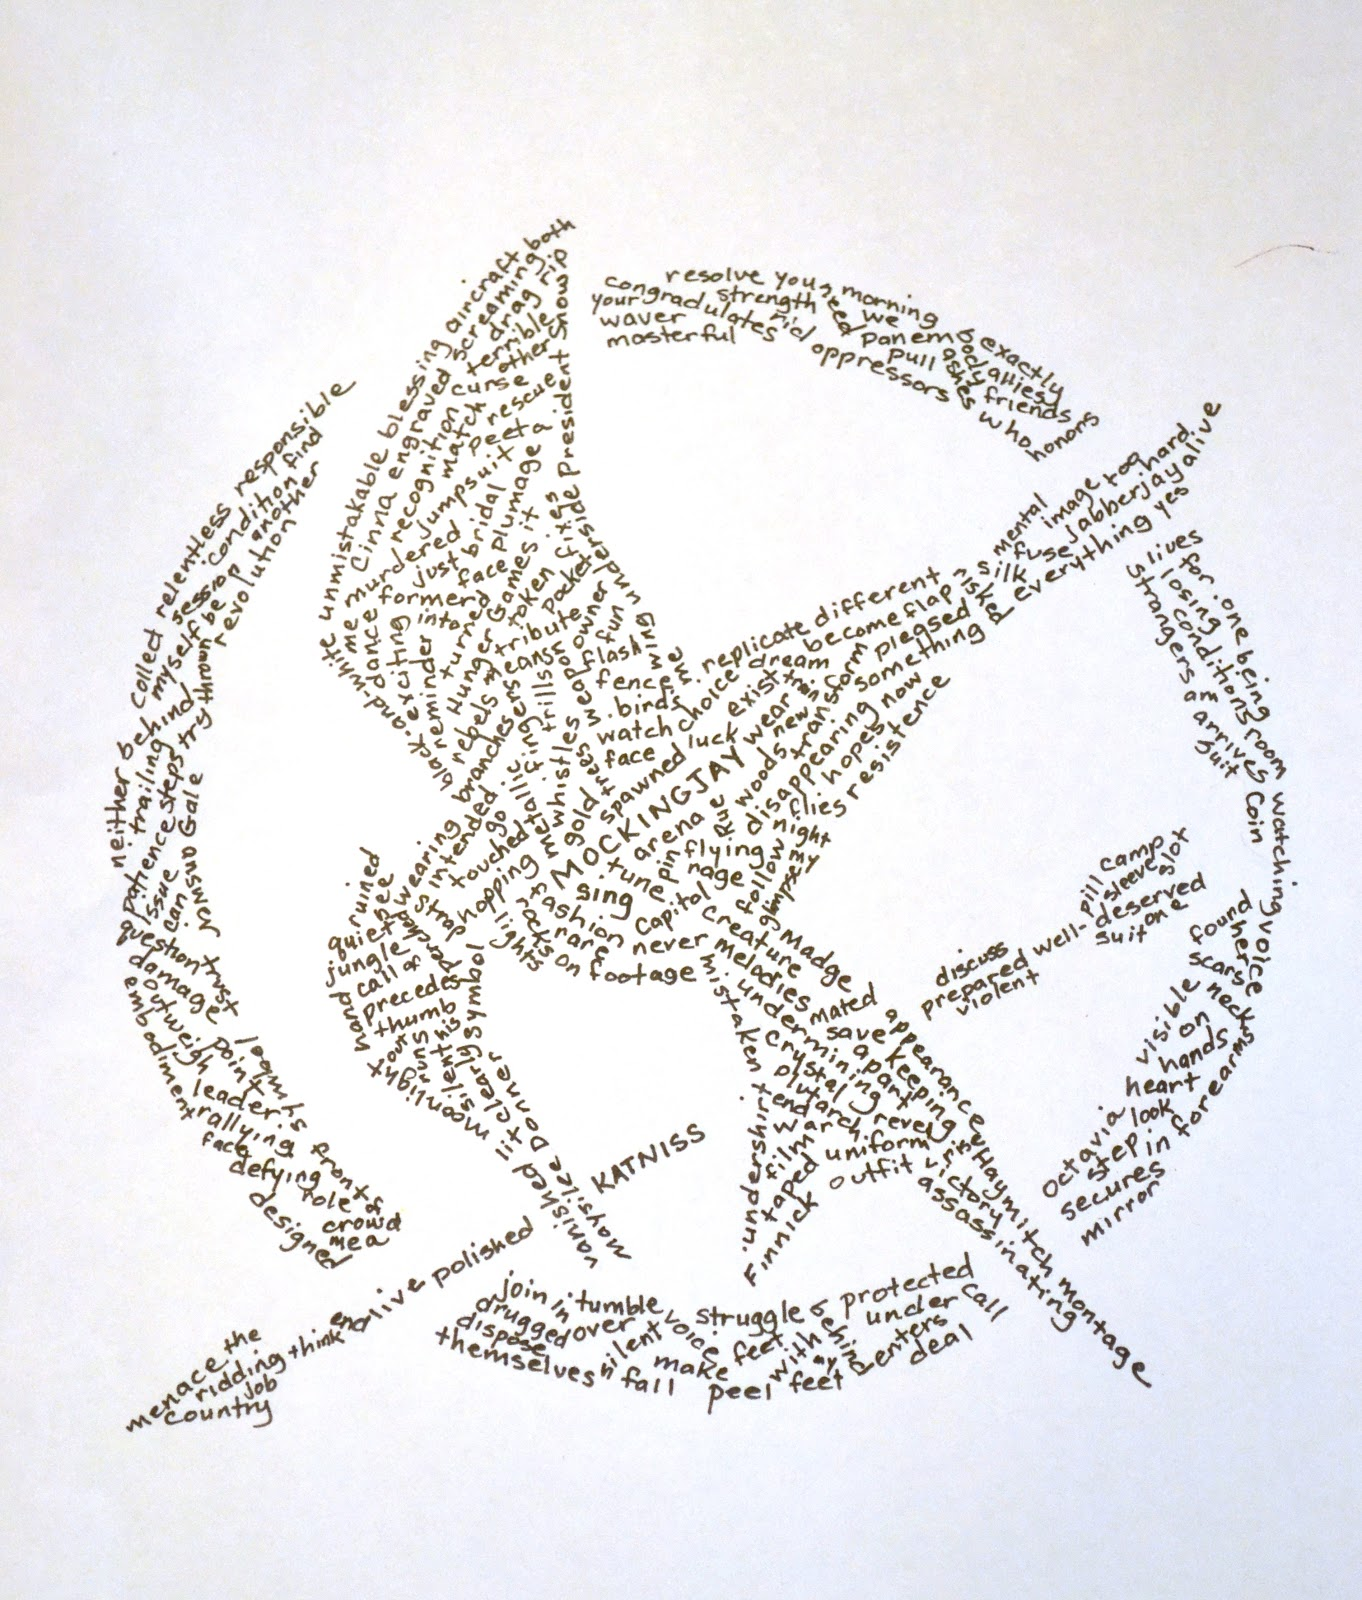 Hunger games coloring pages online - Homeschool Distractions The Hunger Games An Art Project